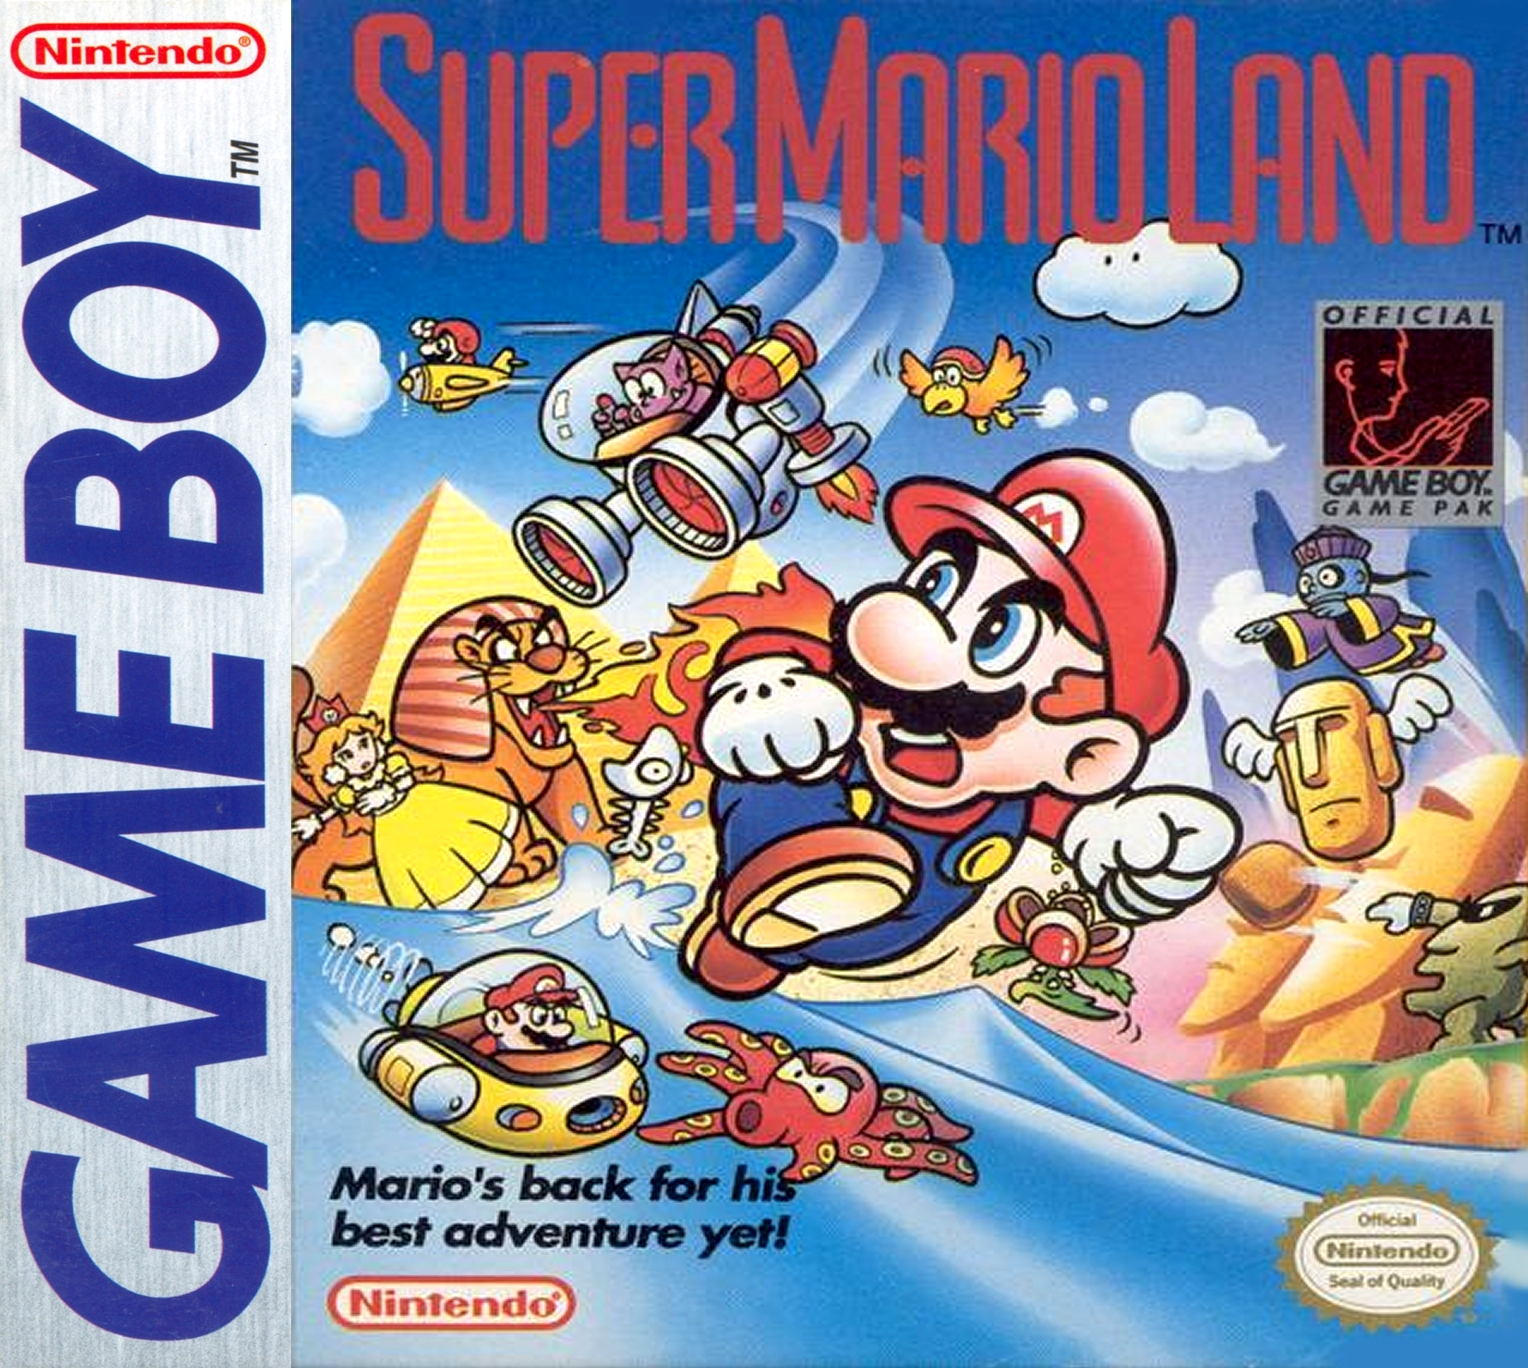 Image result for super mario land game boy box art